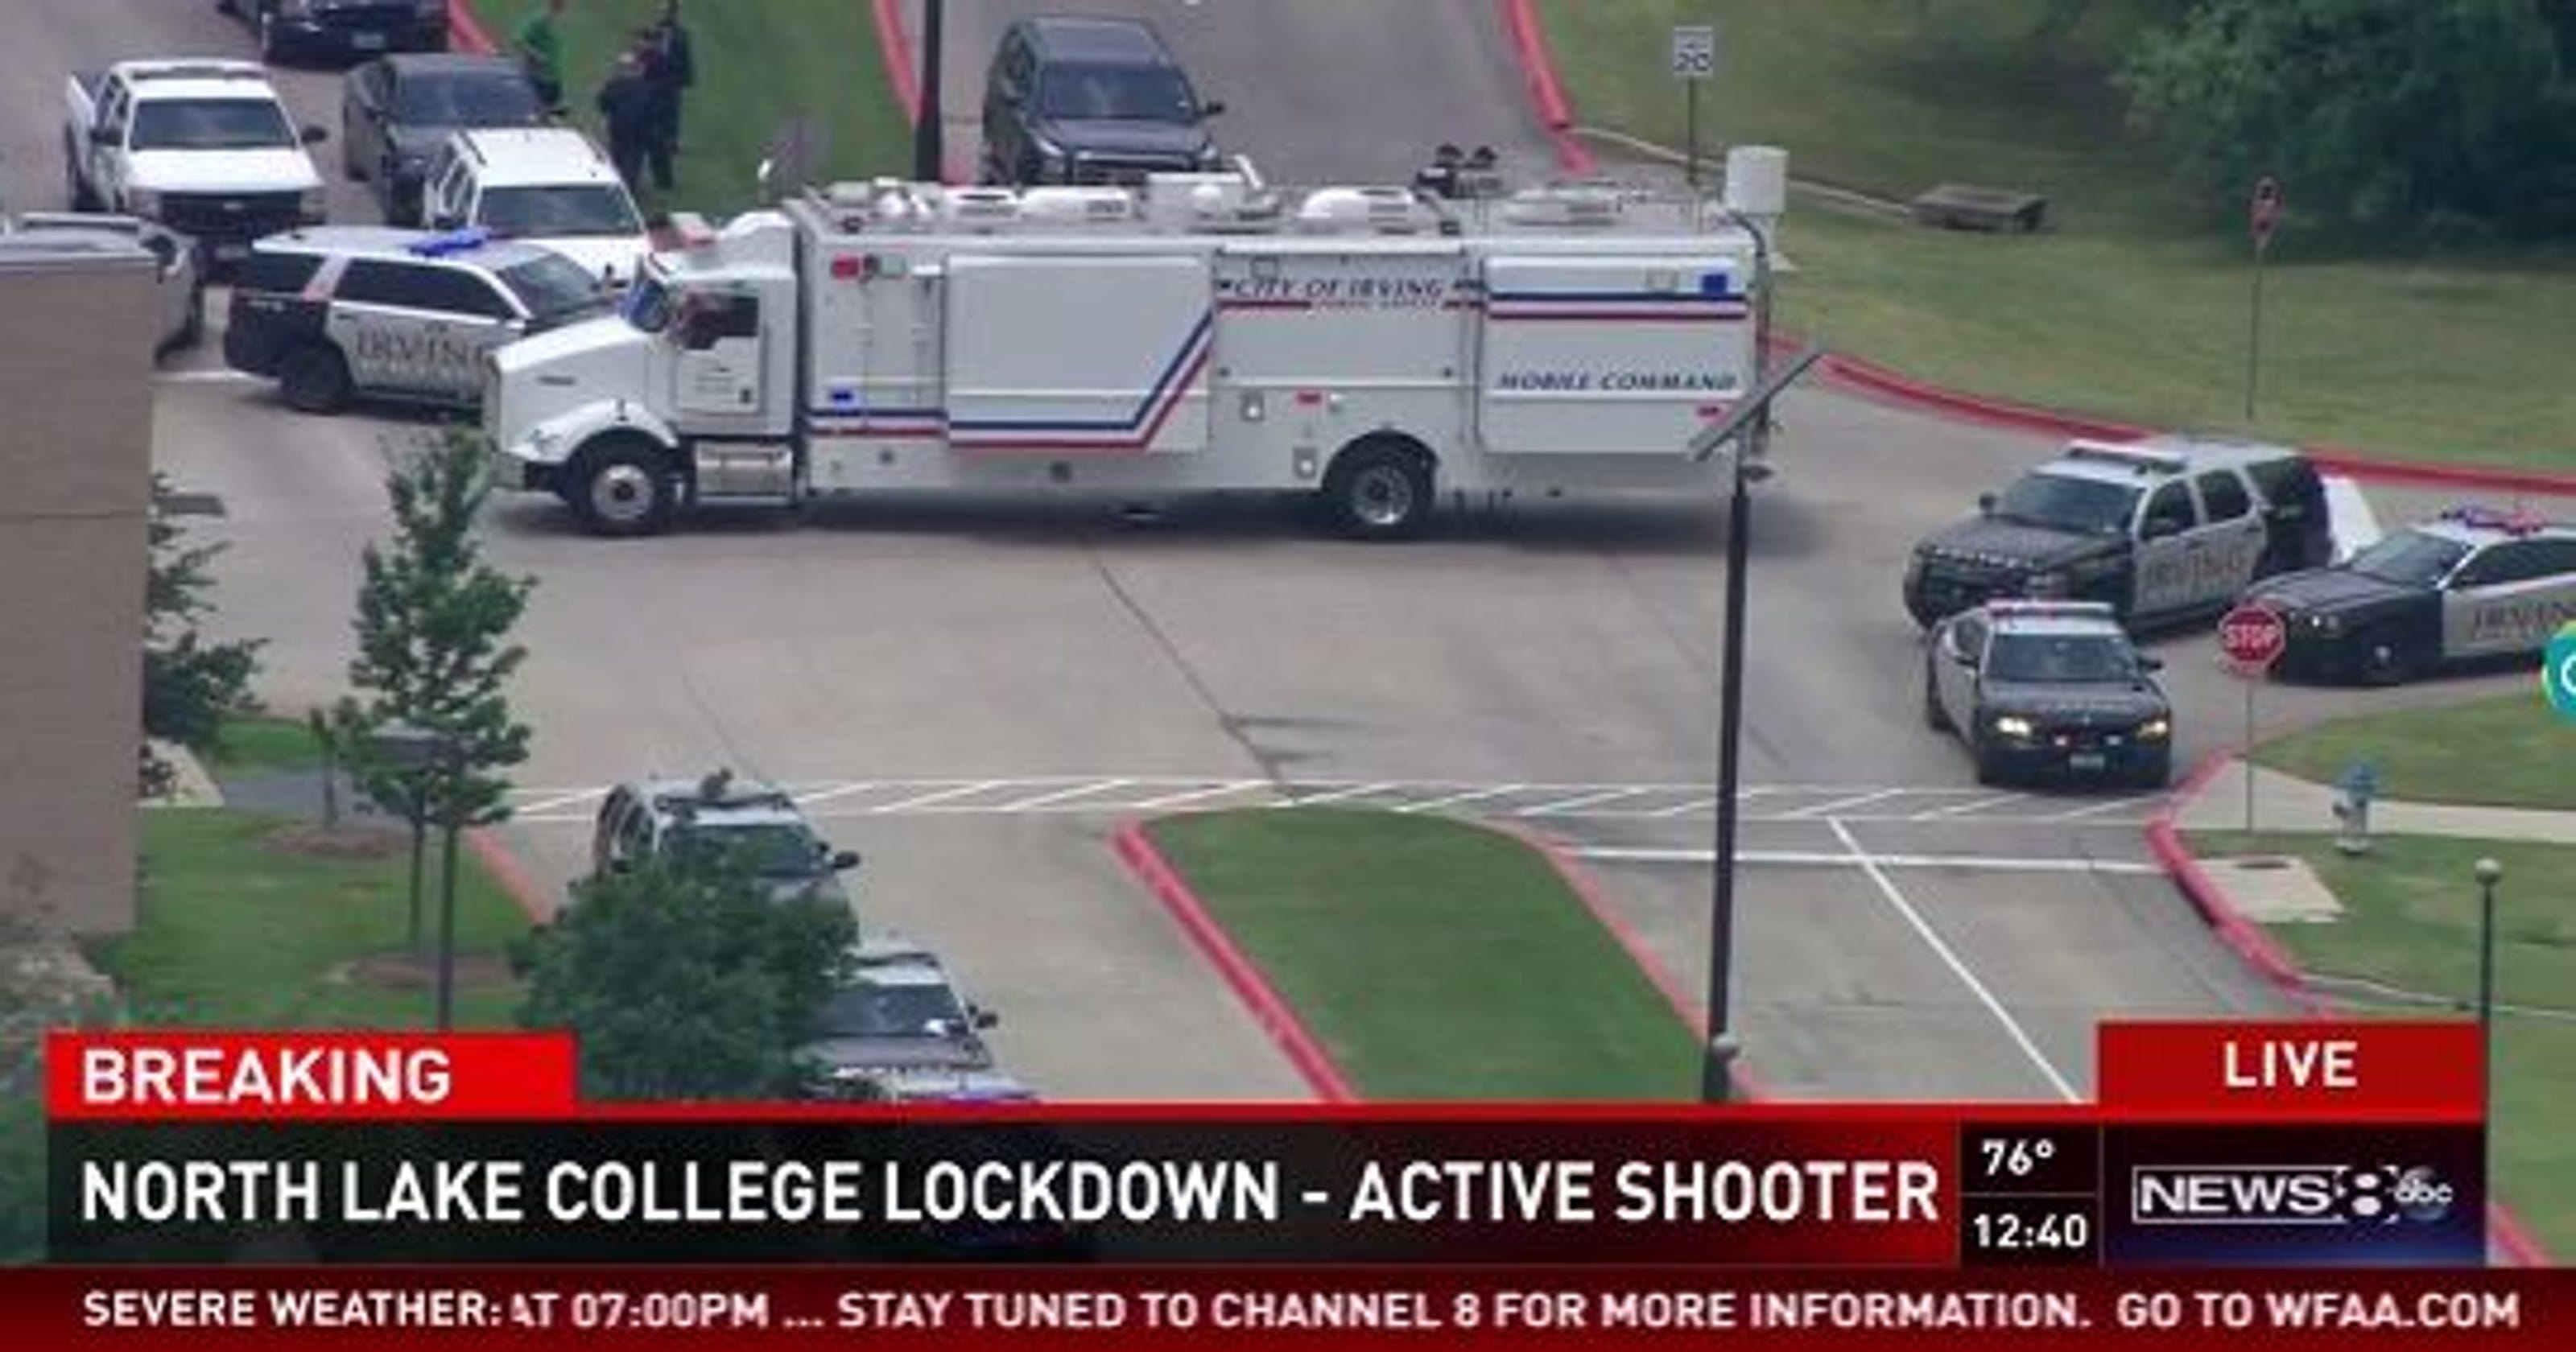 Watch Live: Two people dead after shooting at North Lake